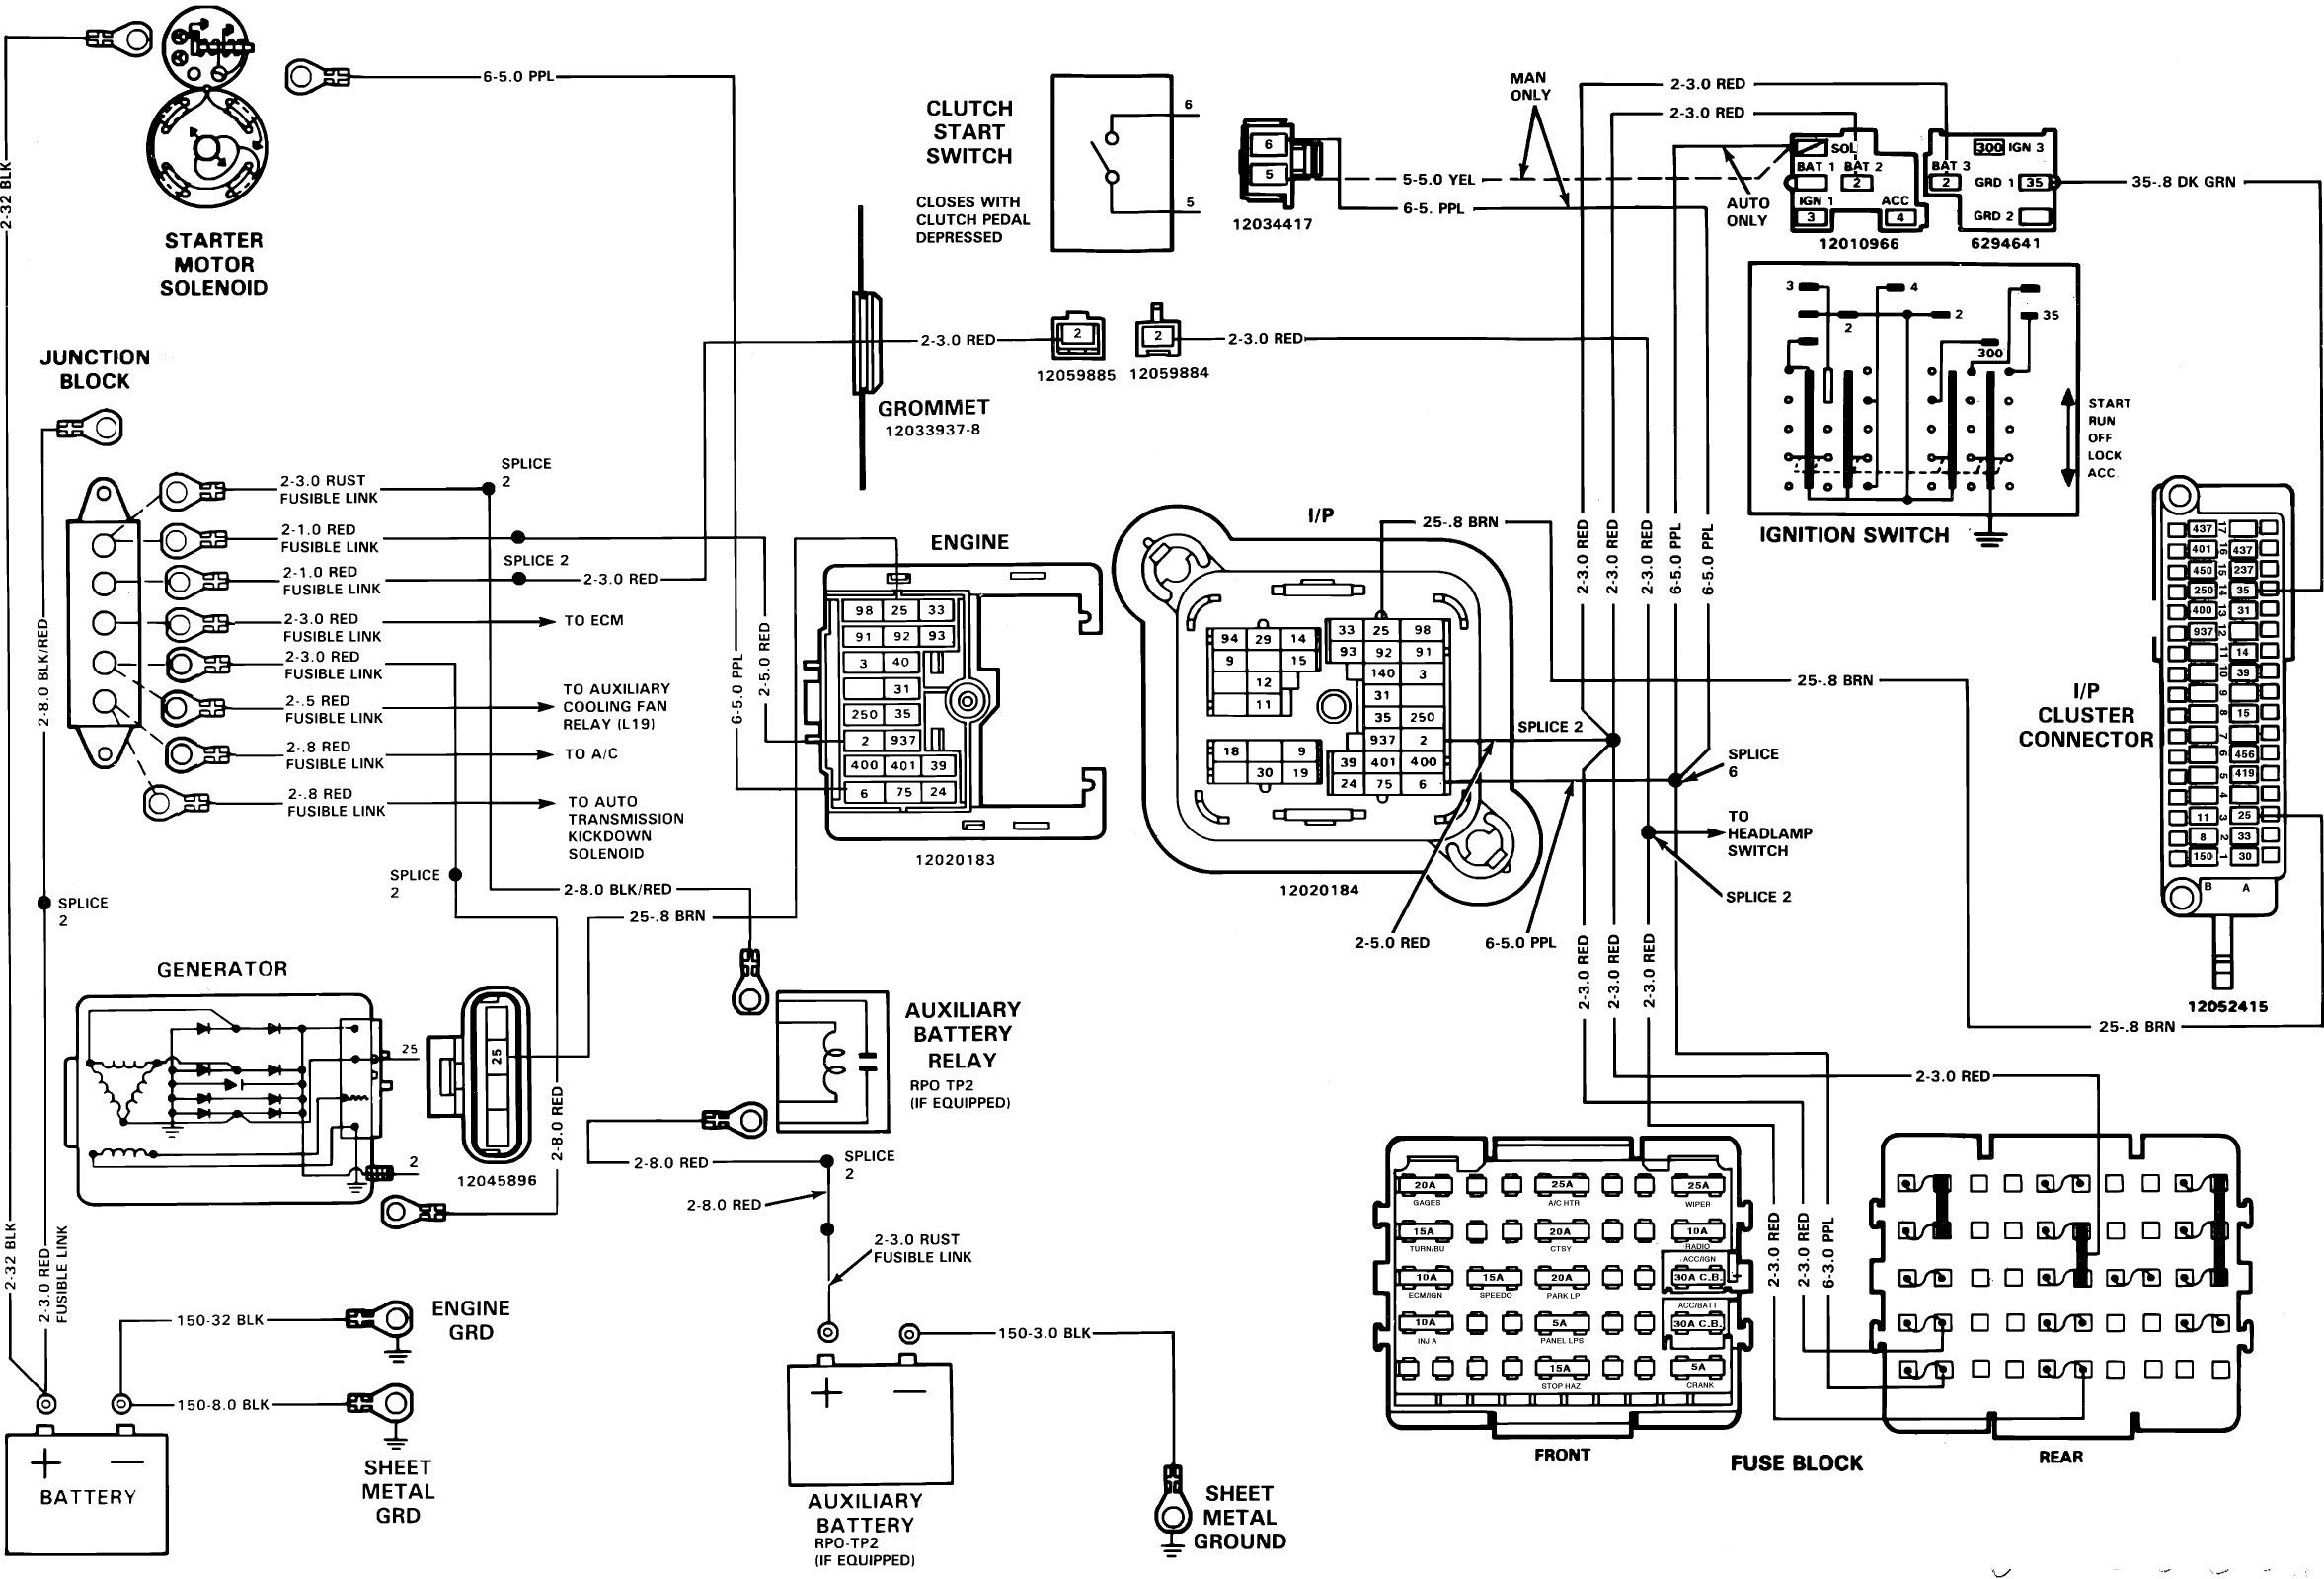 1988 Diagram Wiring Solved Fixya